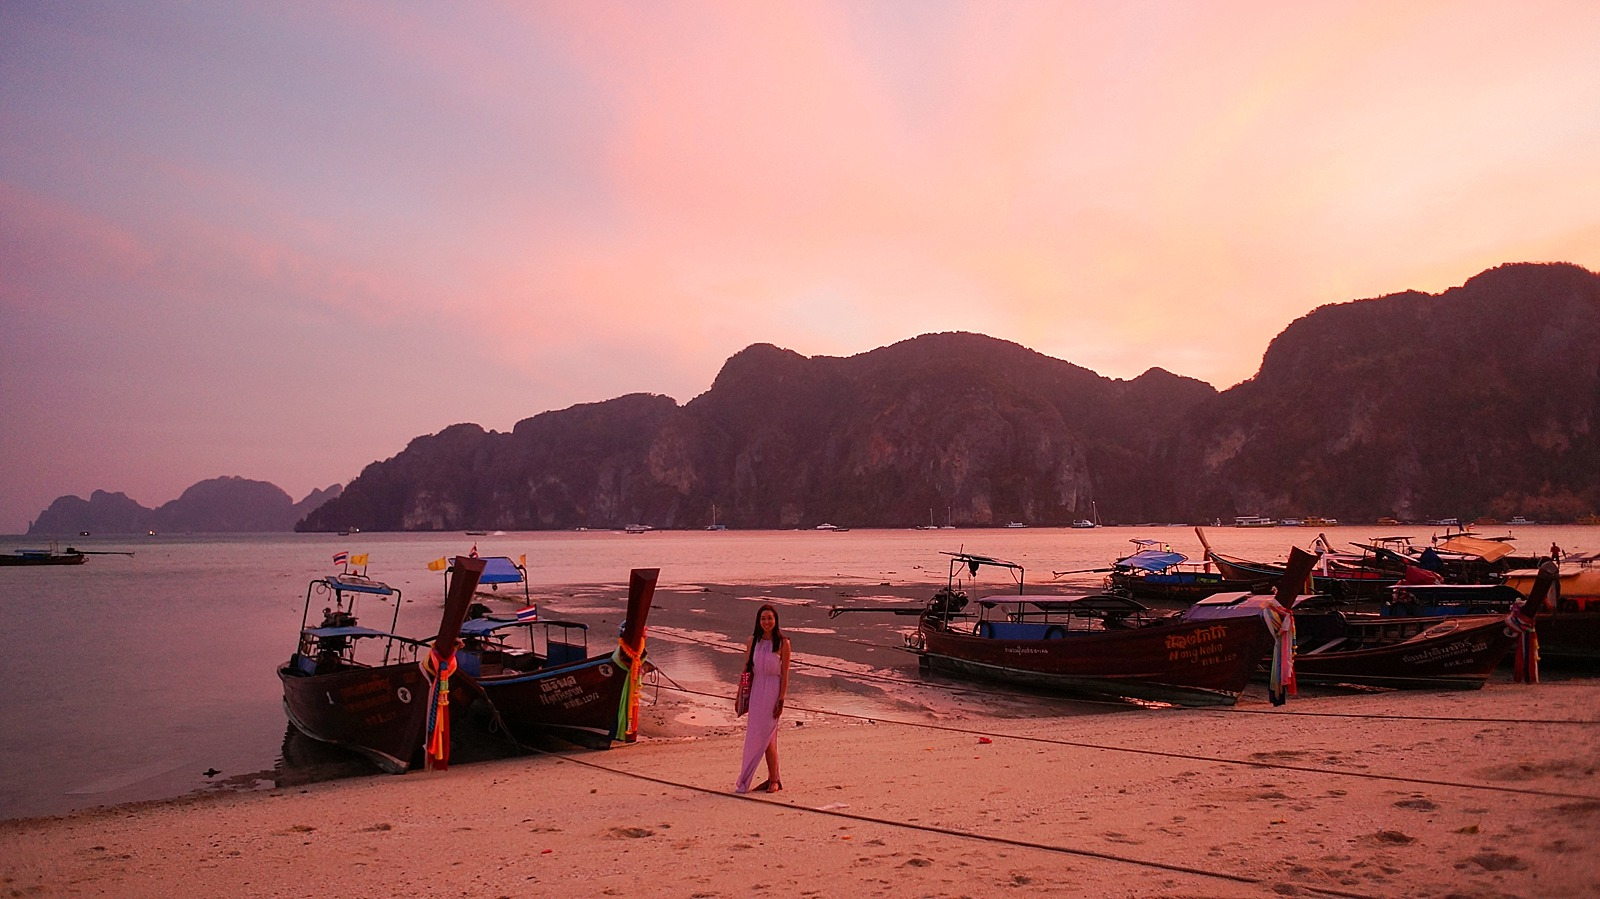 sunset image of Thailand phi phi islands orange sky